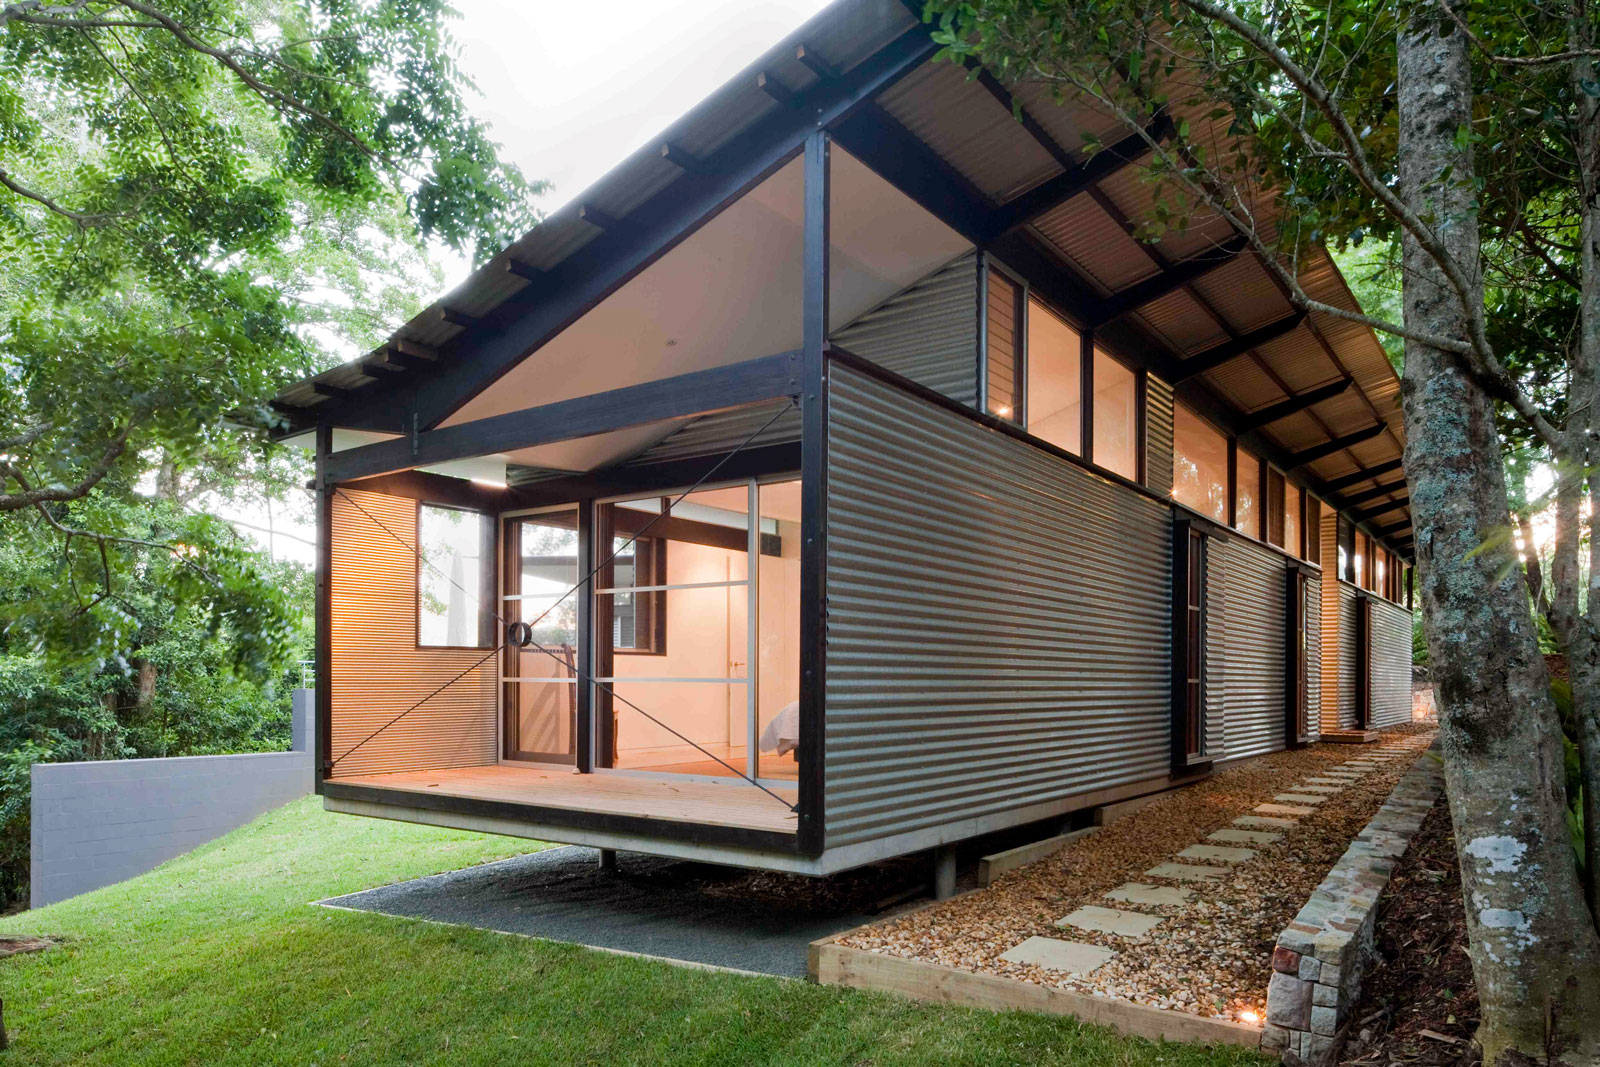 Foxground nettleton architects for Moderne wohncontainer